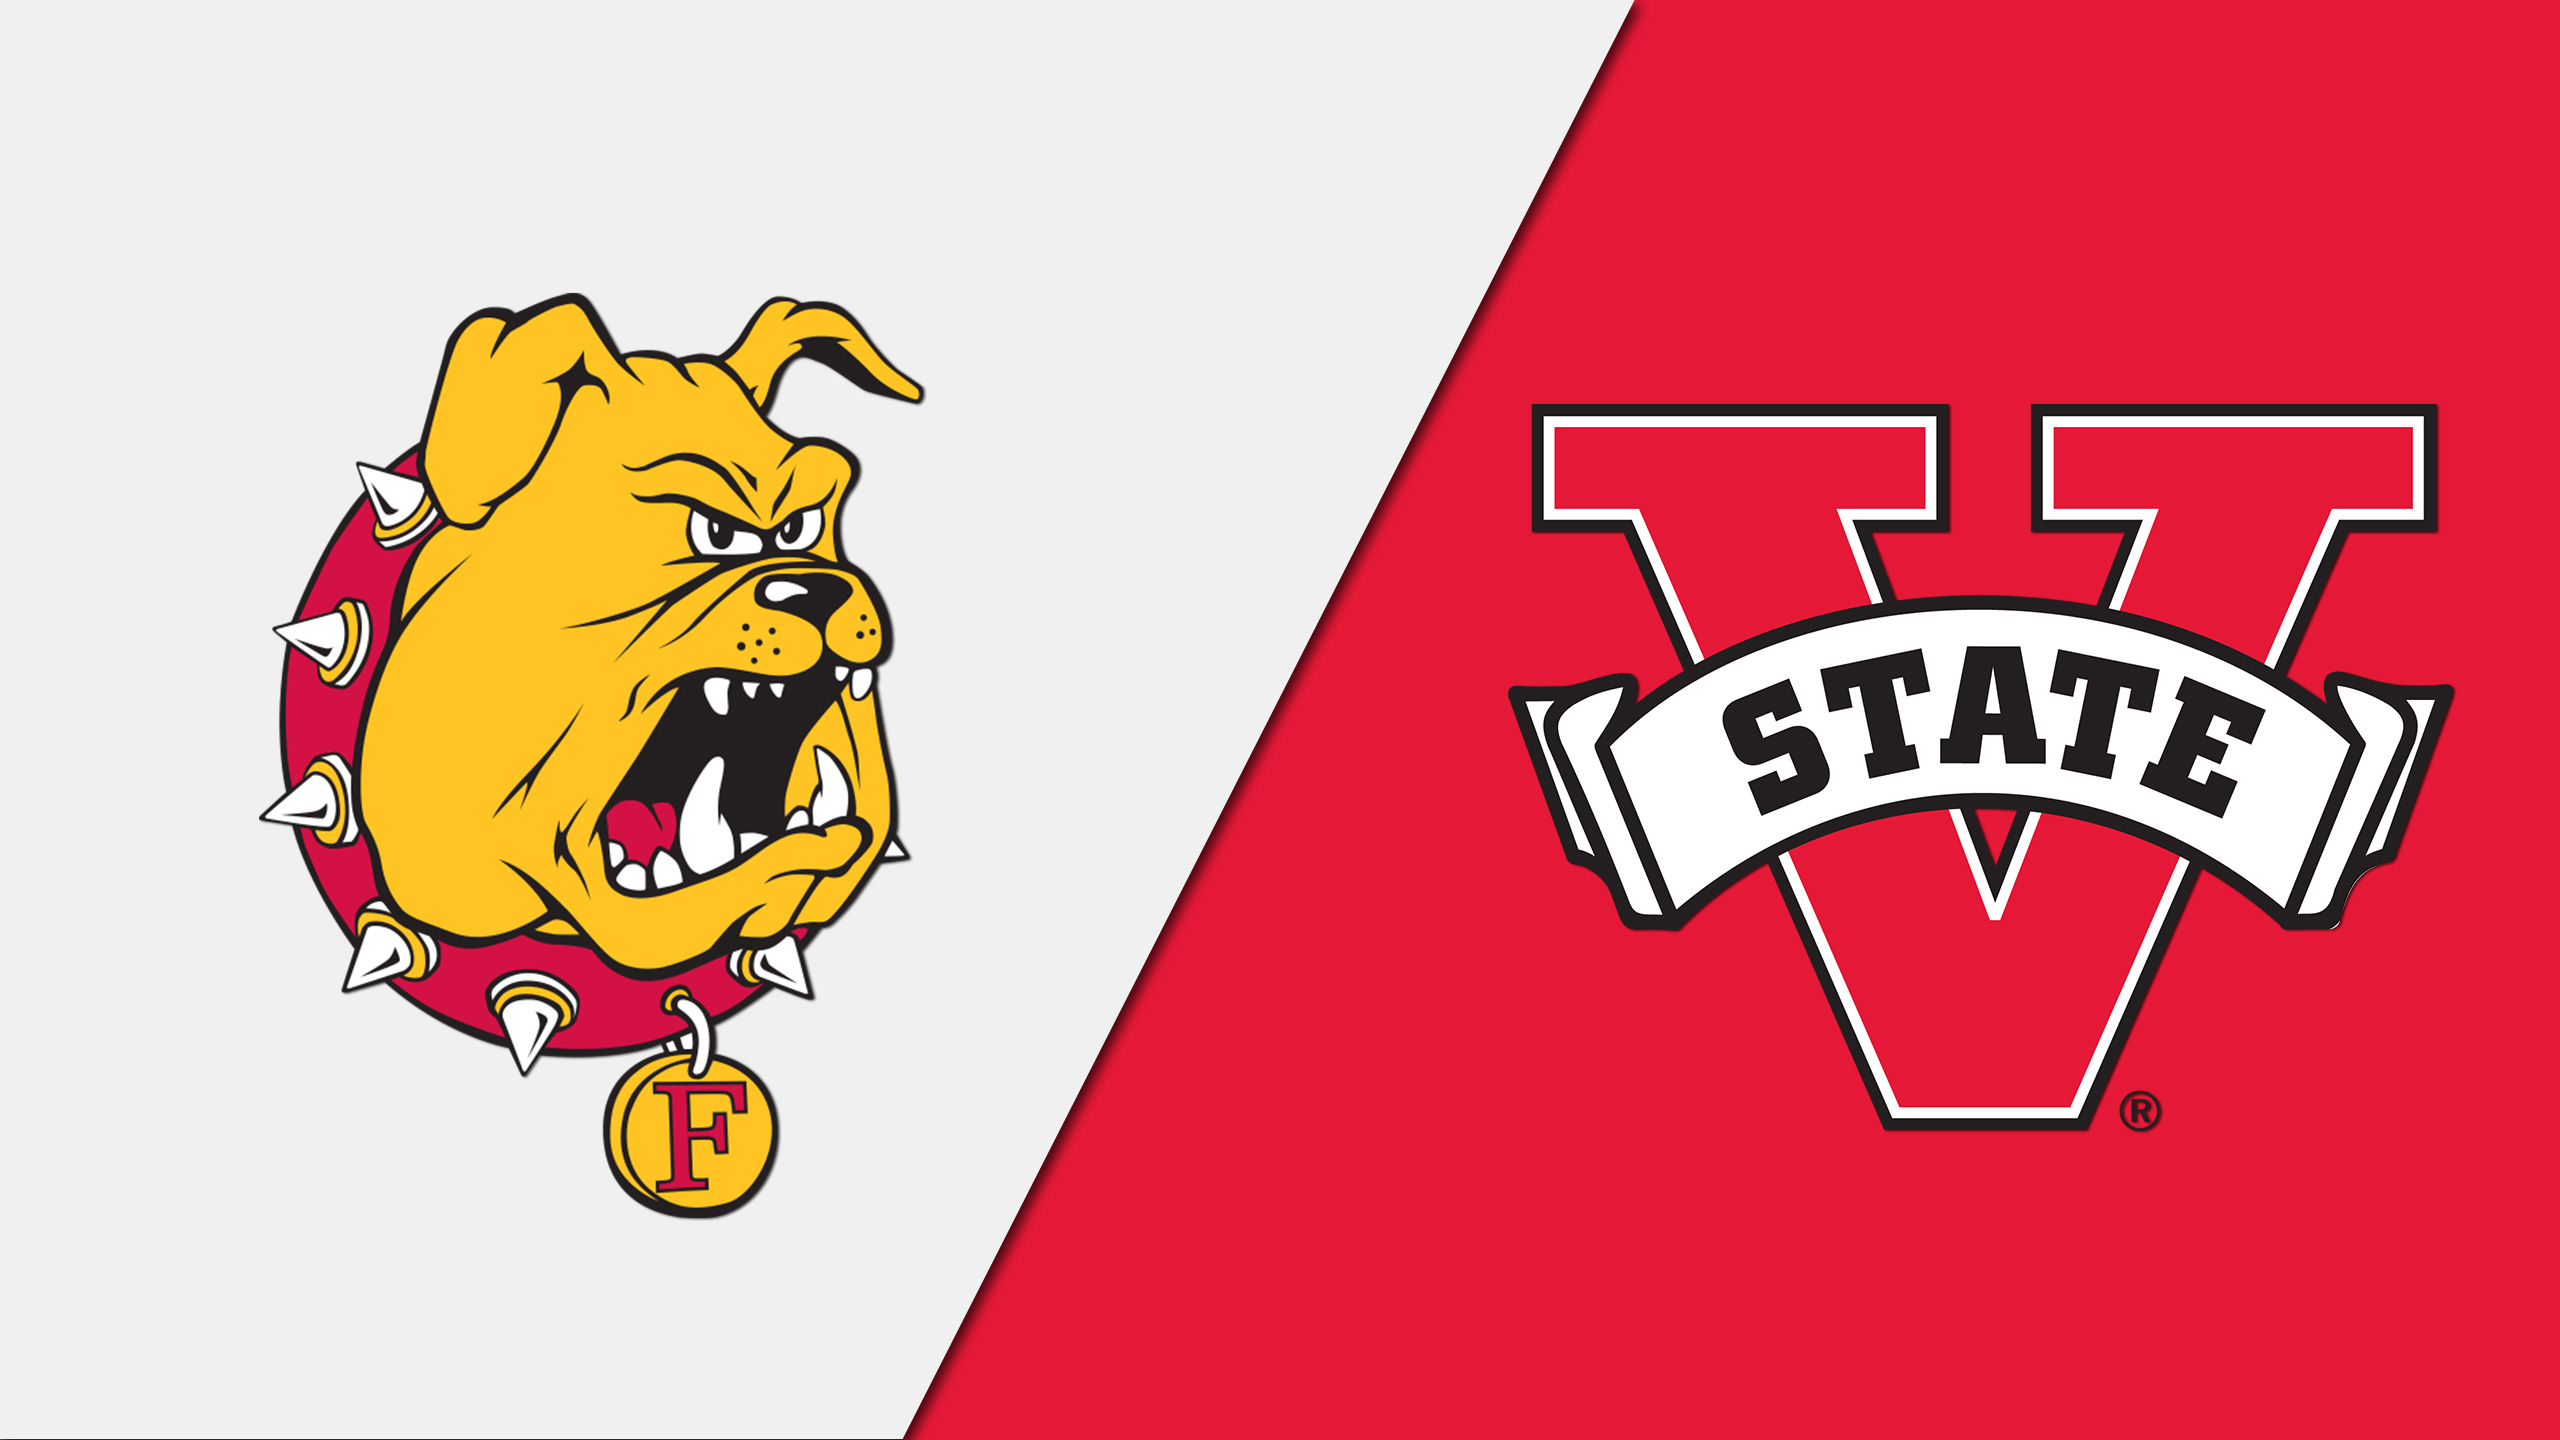 Ferris State (MI) vs. Valdosta State (Championship) (re-air)